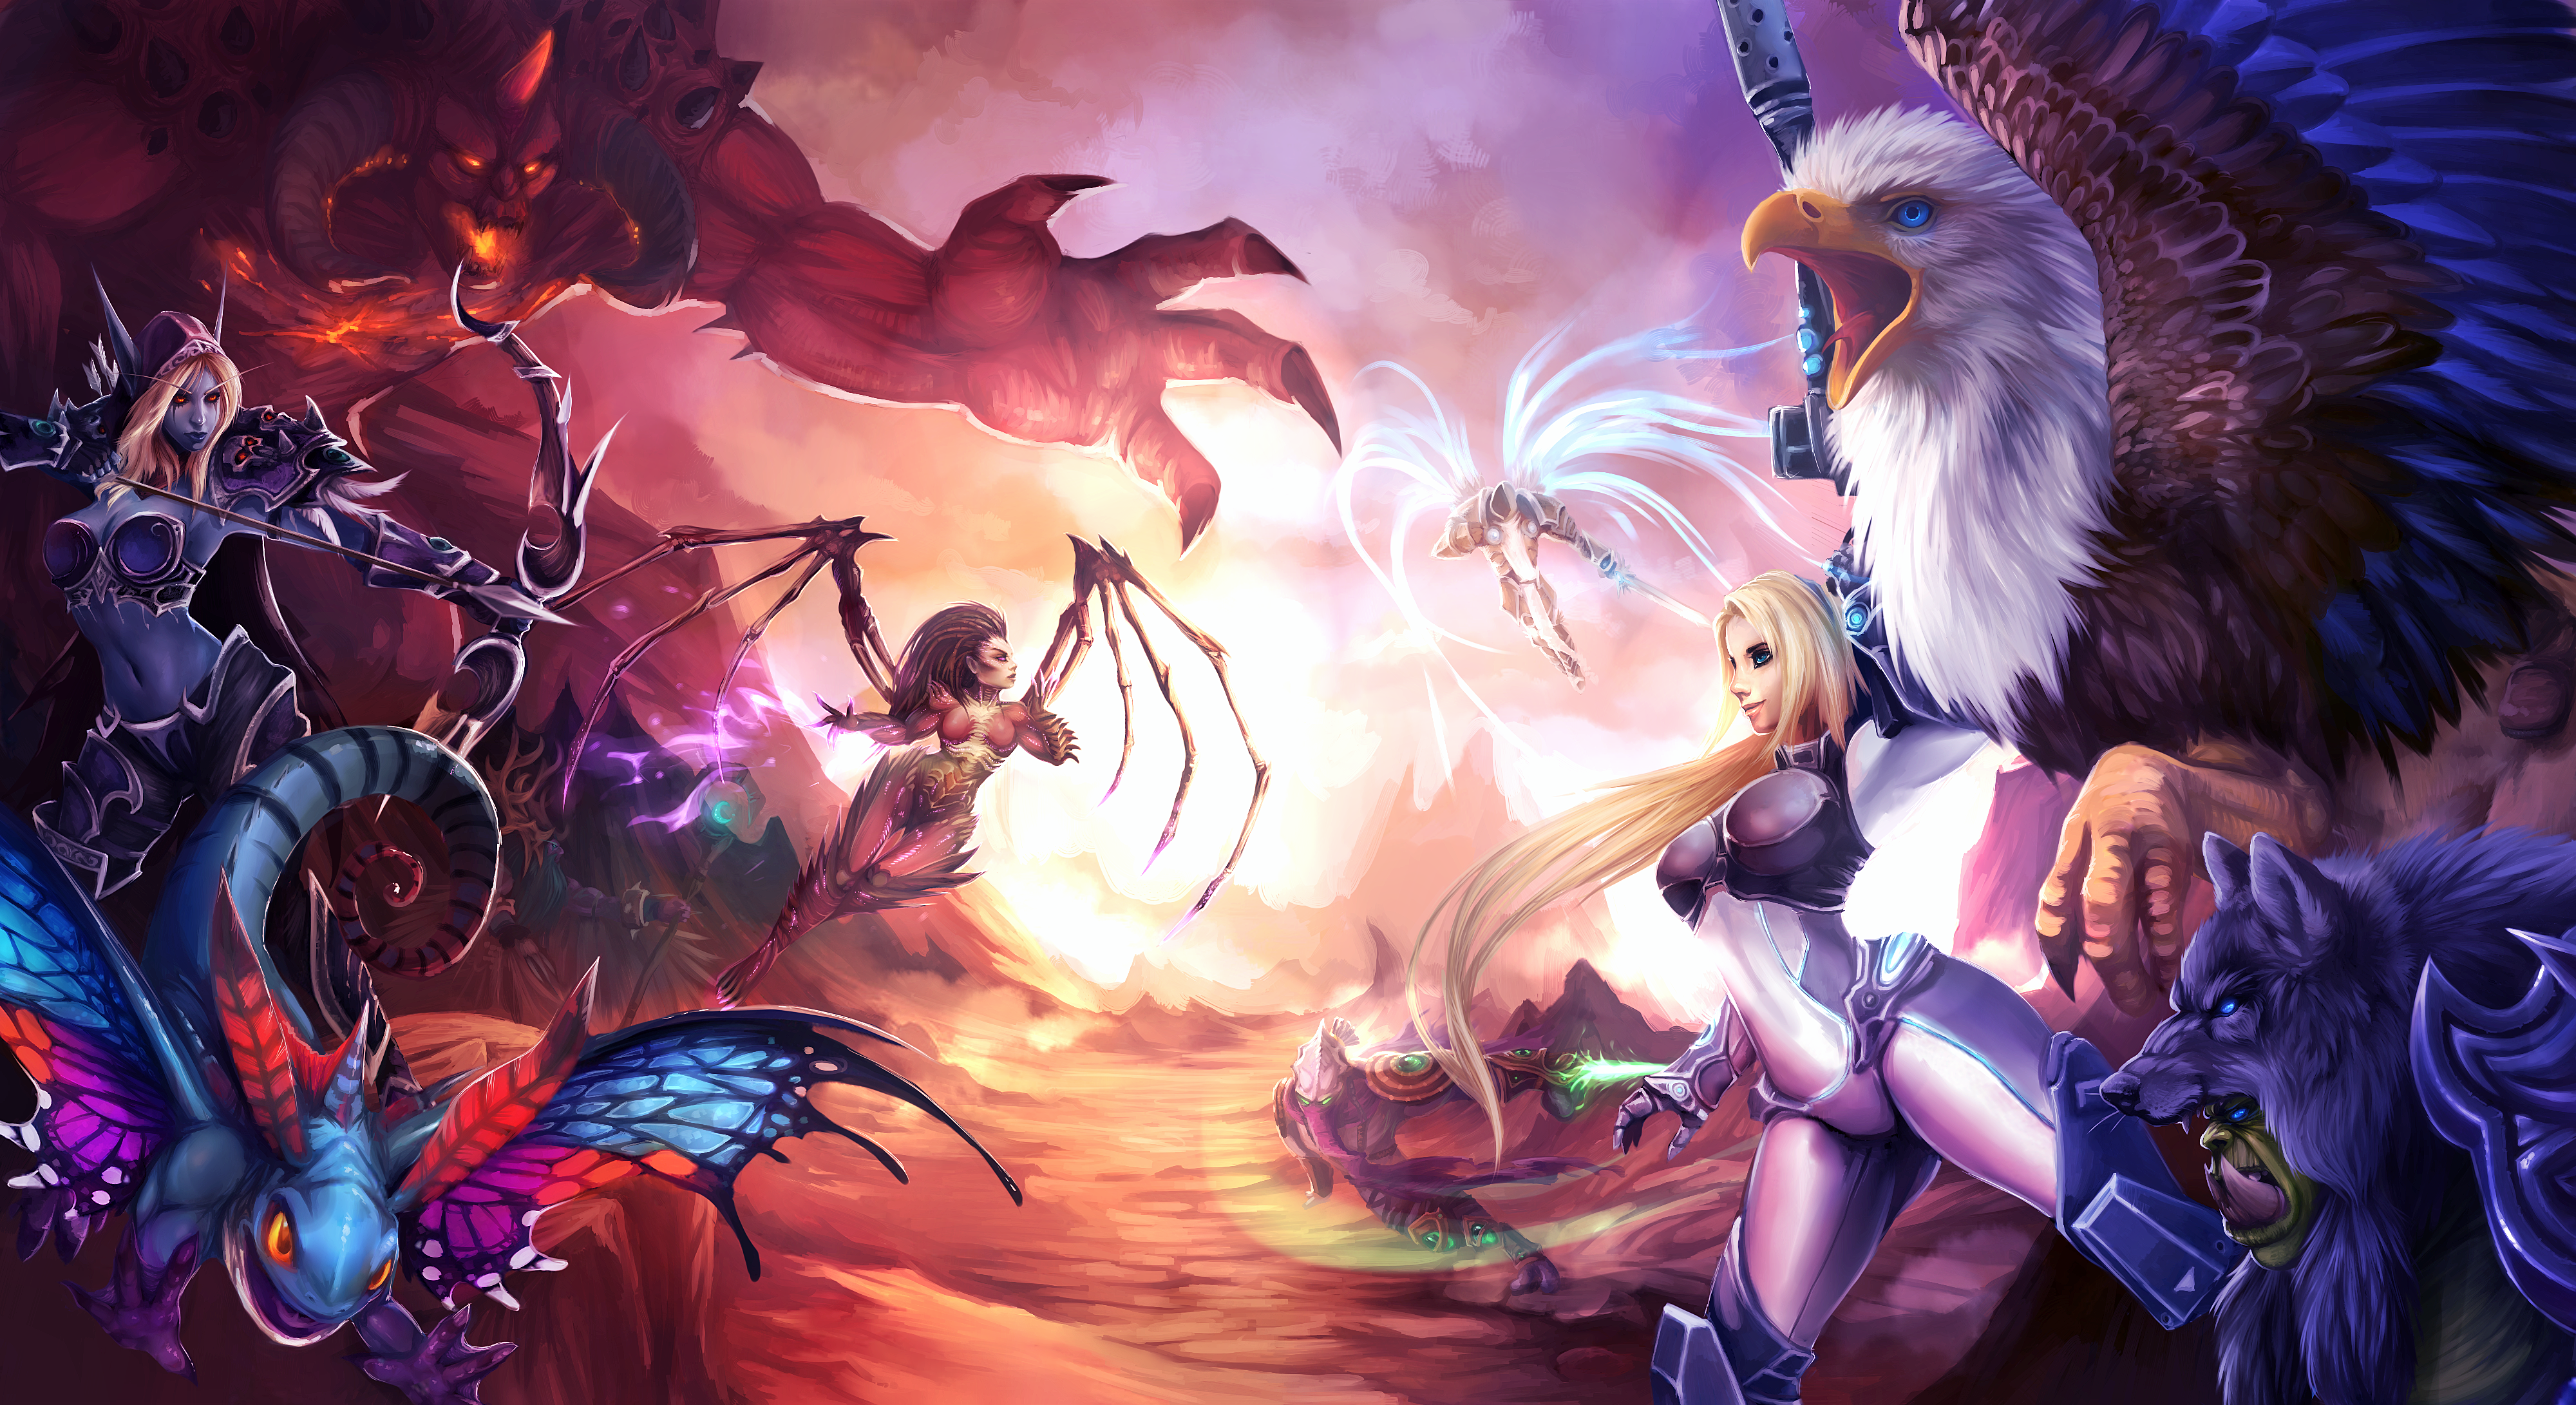 Free Download 126 Heroes Of The Storm Hd Wallpapers Background